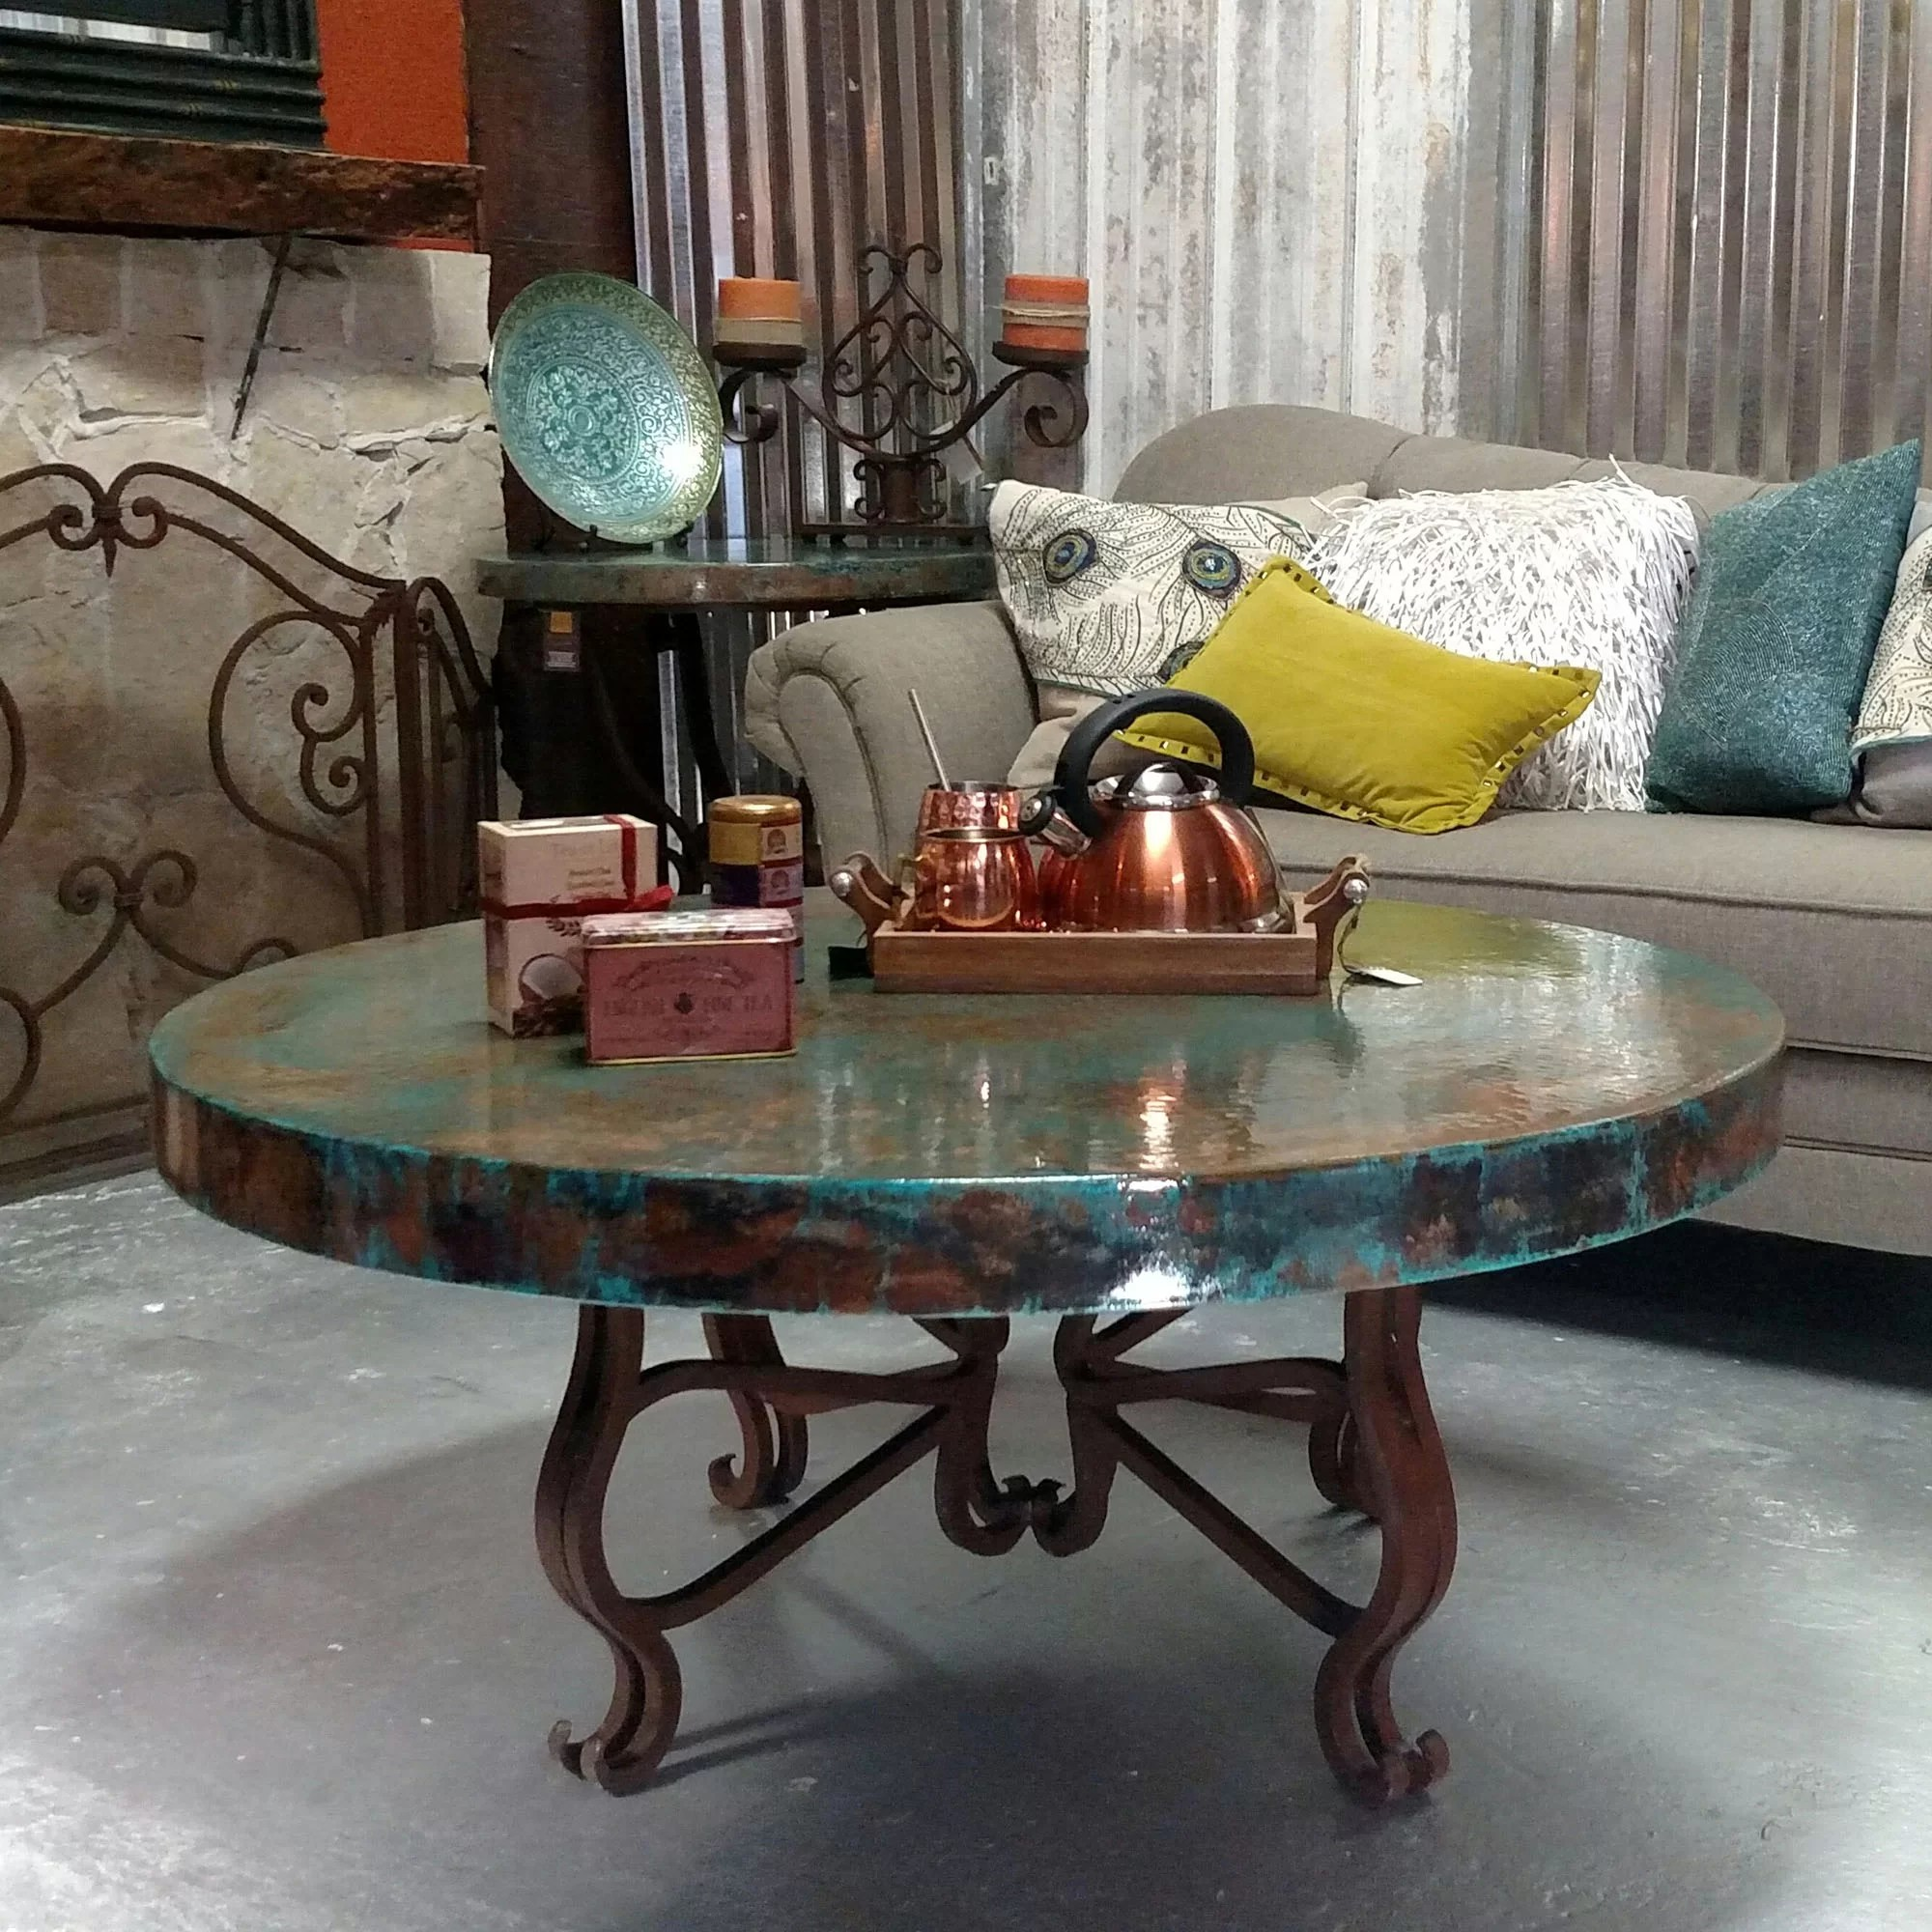 luxurious wrought iron coffee table embellished with a 48 round oxidized copper top